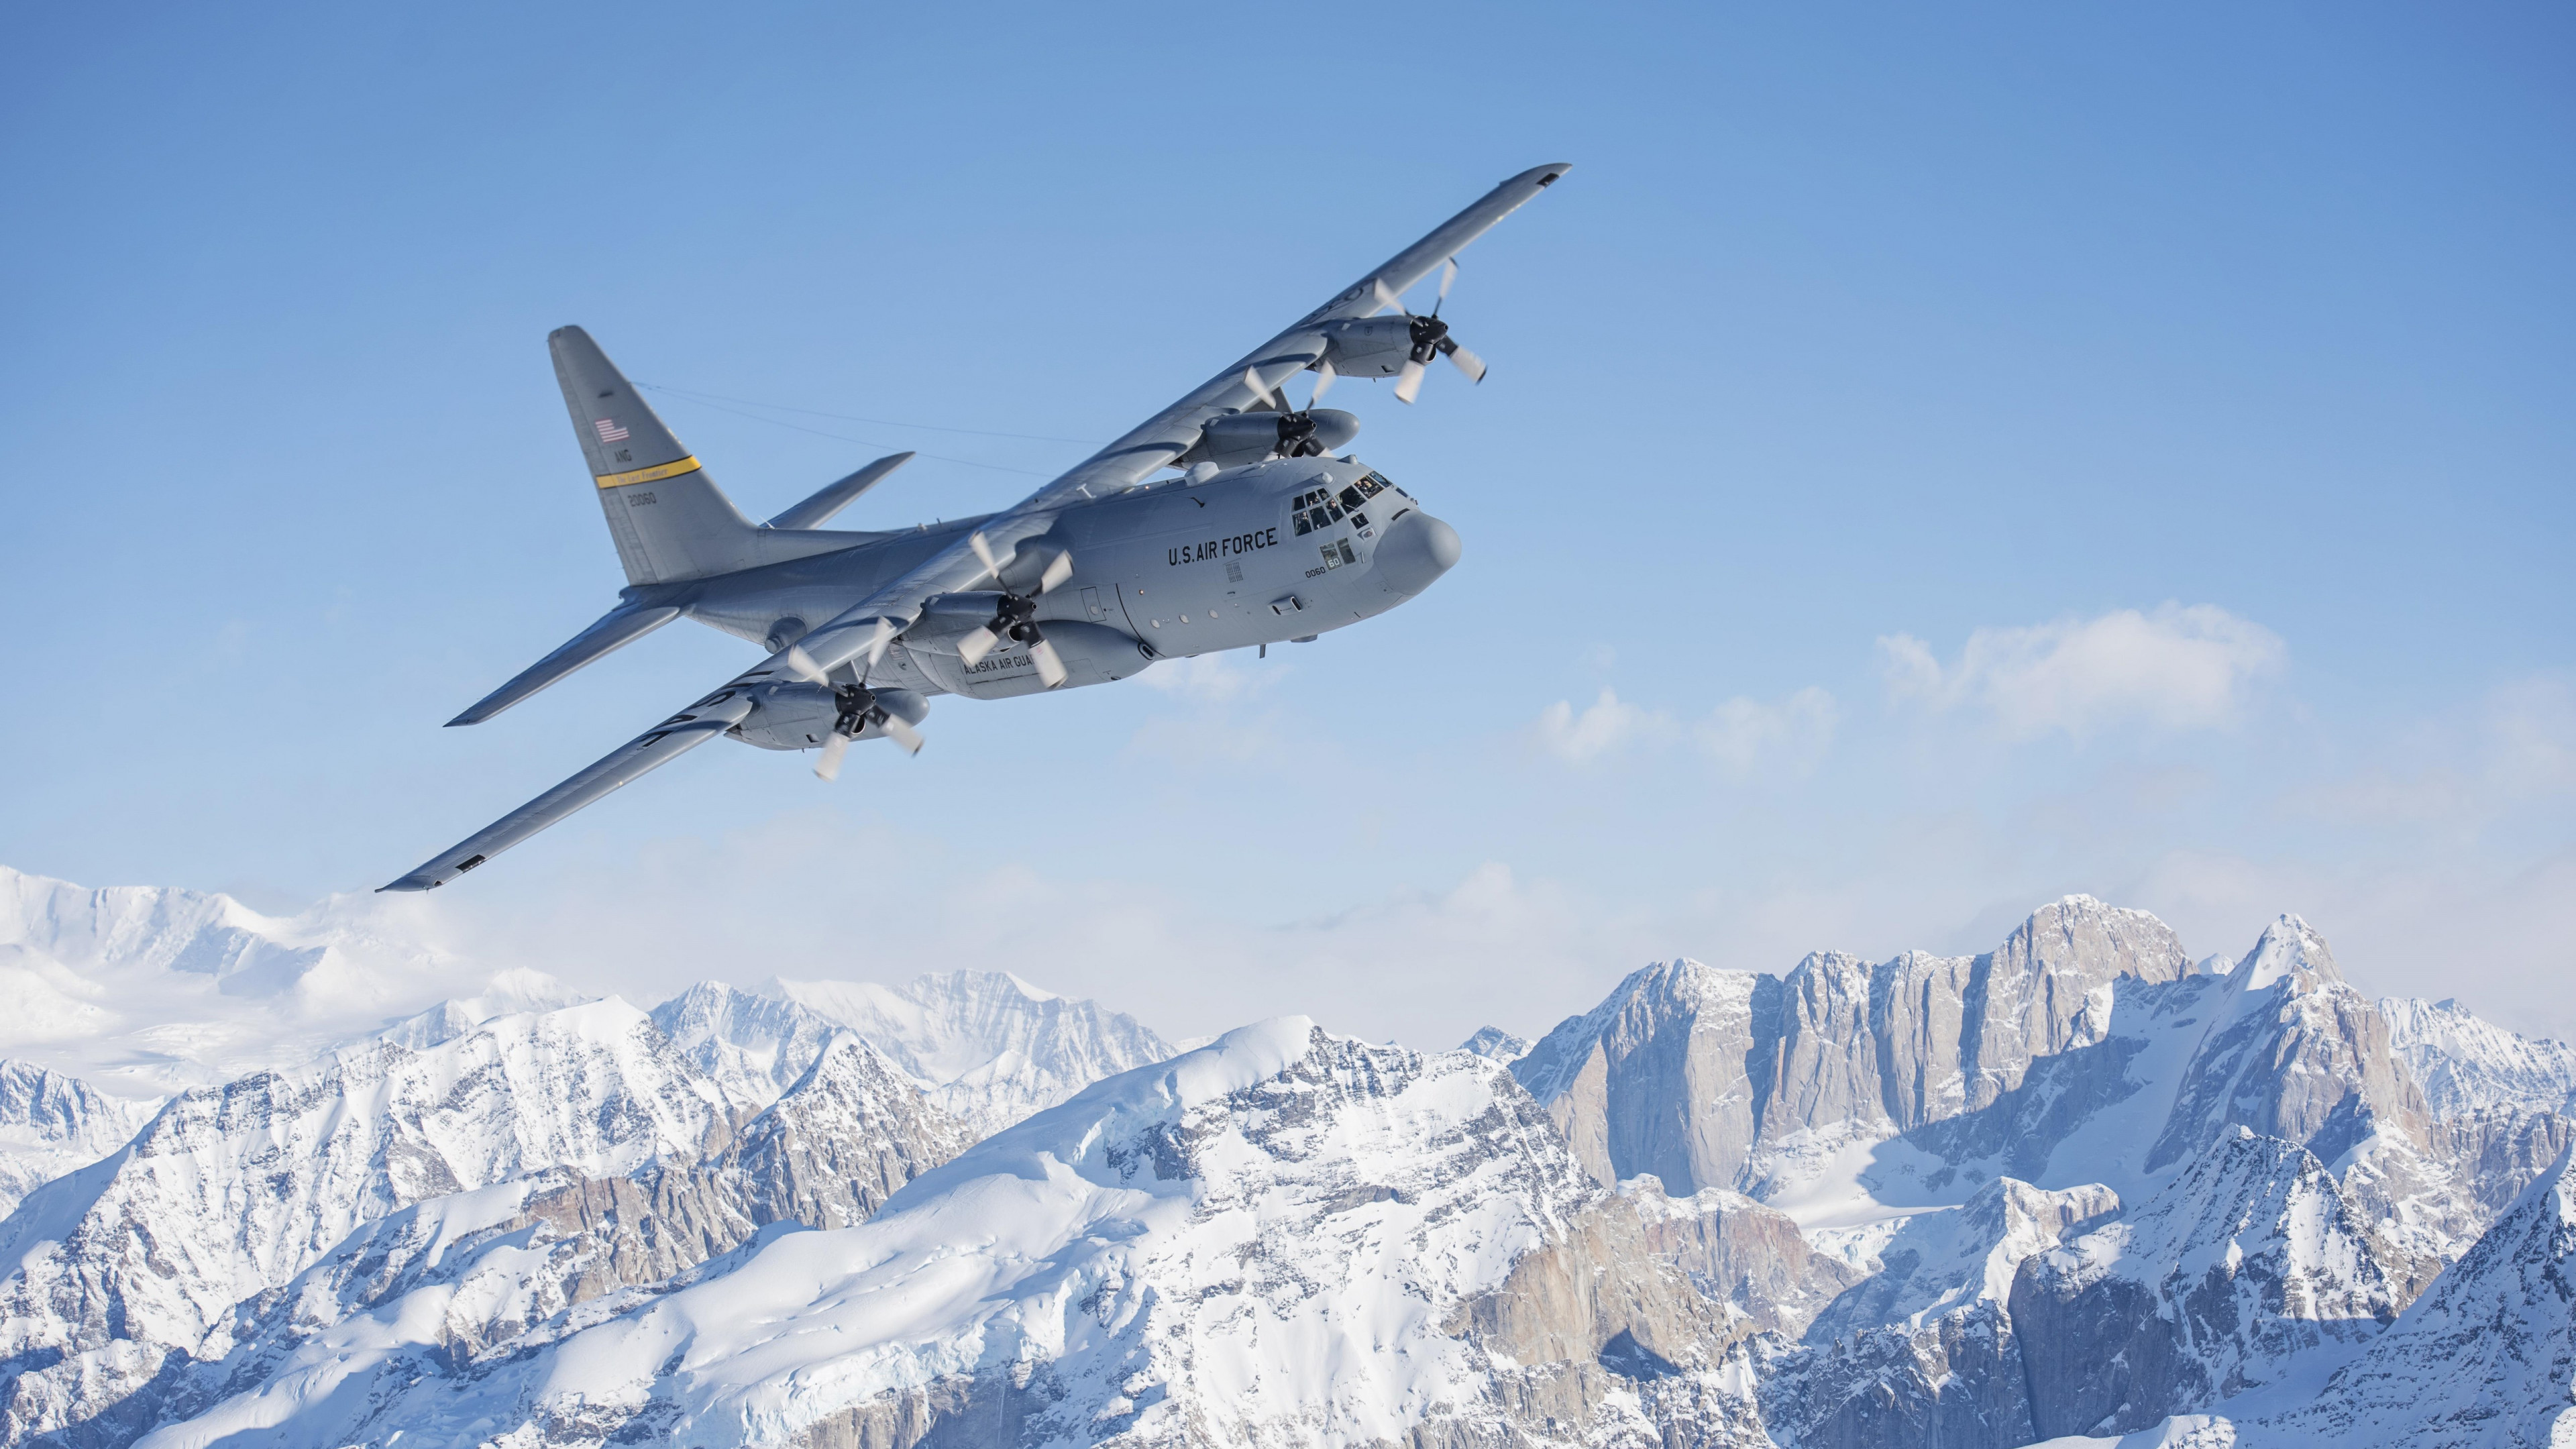 Hercules Aircraft wallpaper 3840x2160